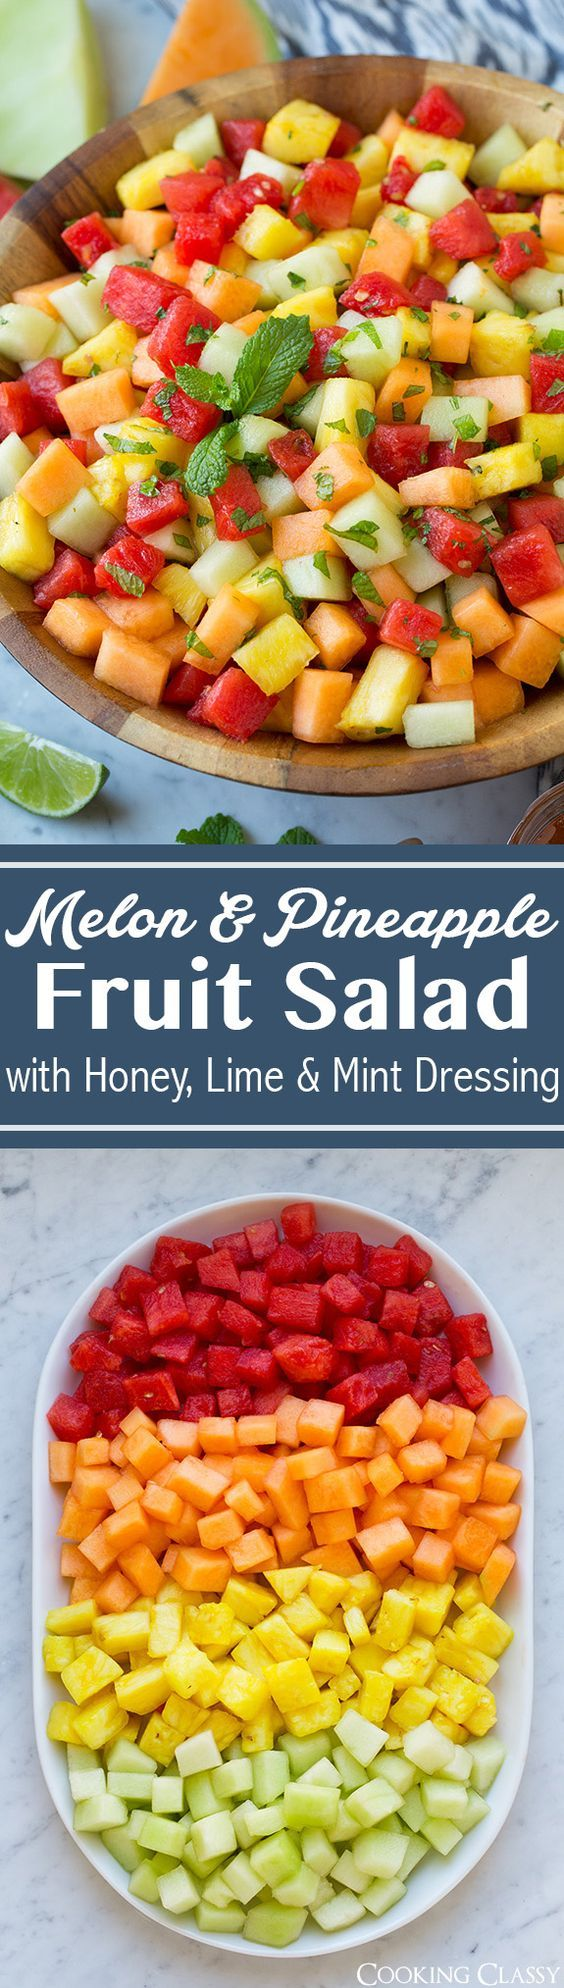 Melon Fruit Salad - the perfect spring and summer fruit salad! Light and perfectly refreshing!: